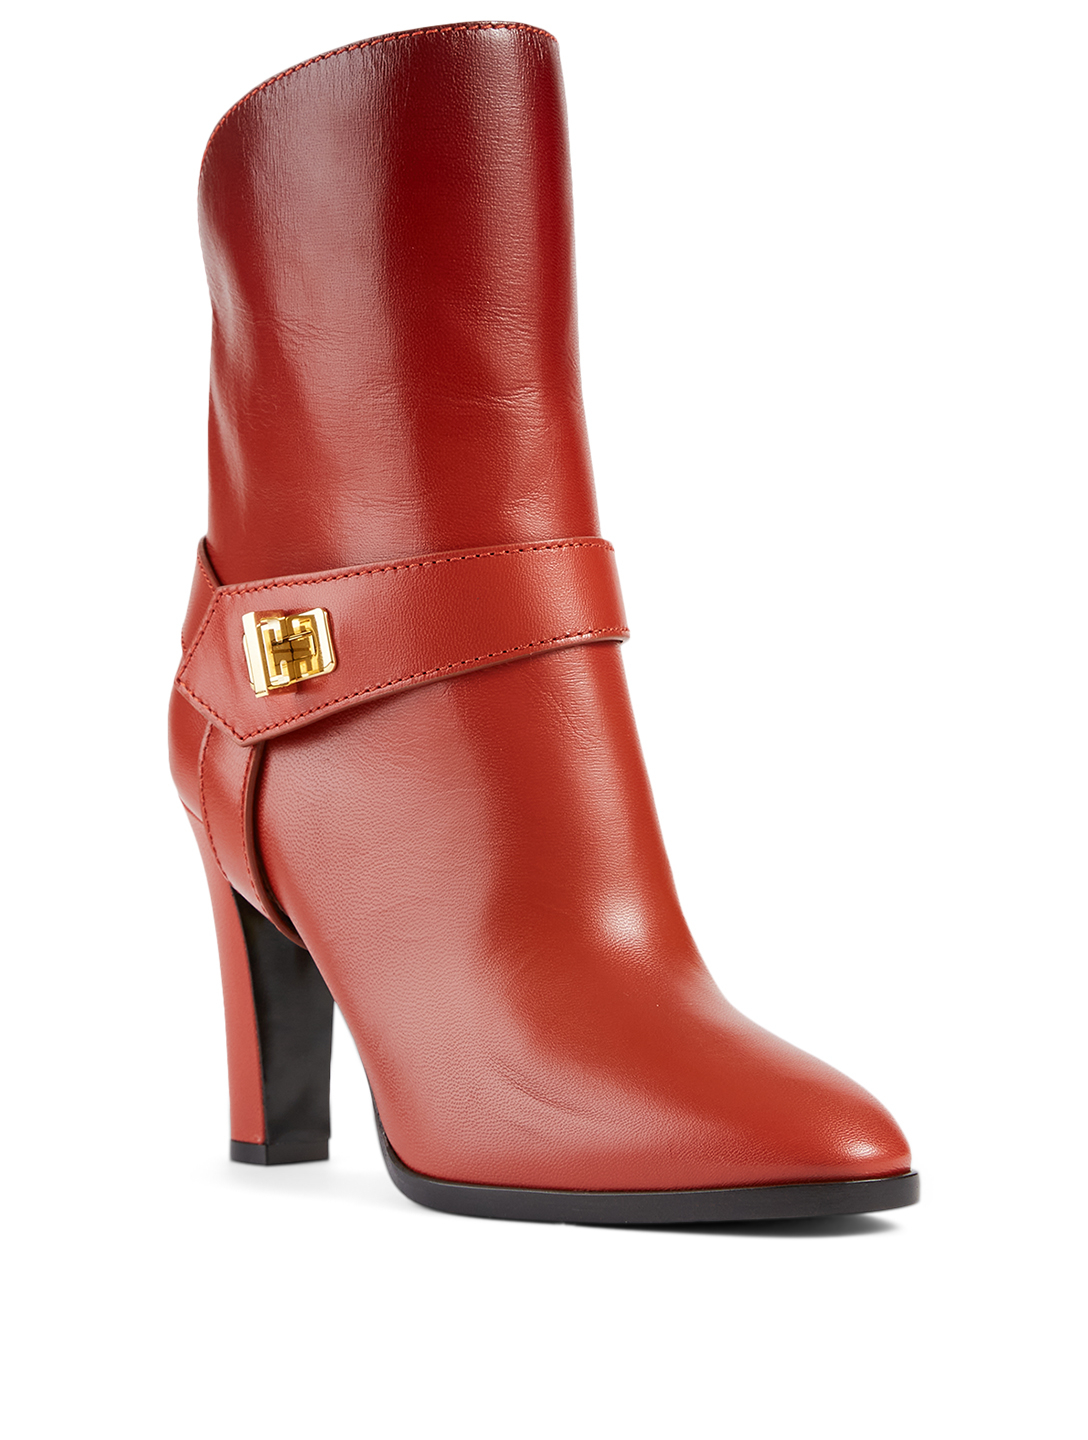 GIVENCHY Eden Leather Heeled Ankle Boots Women's Red